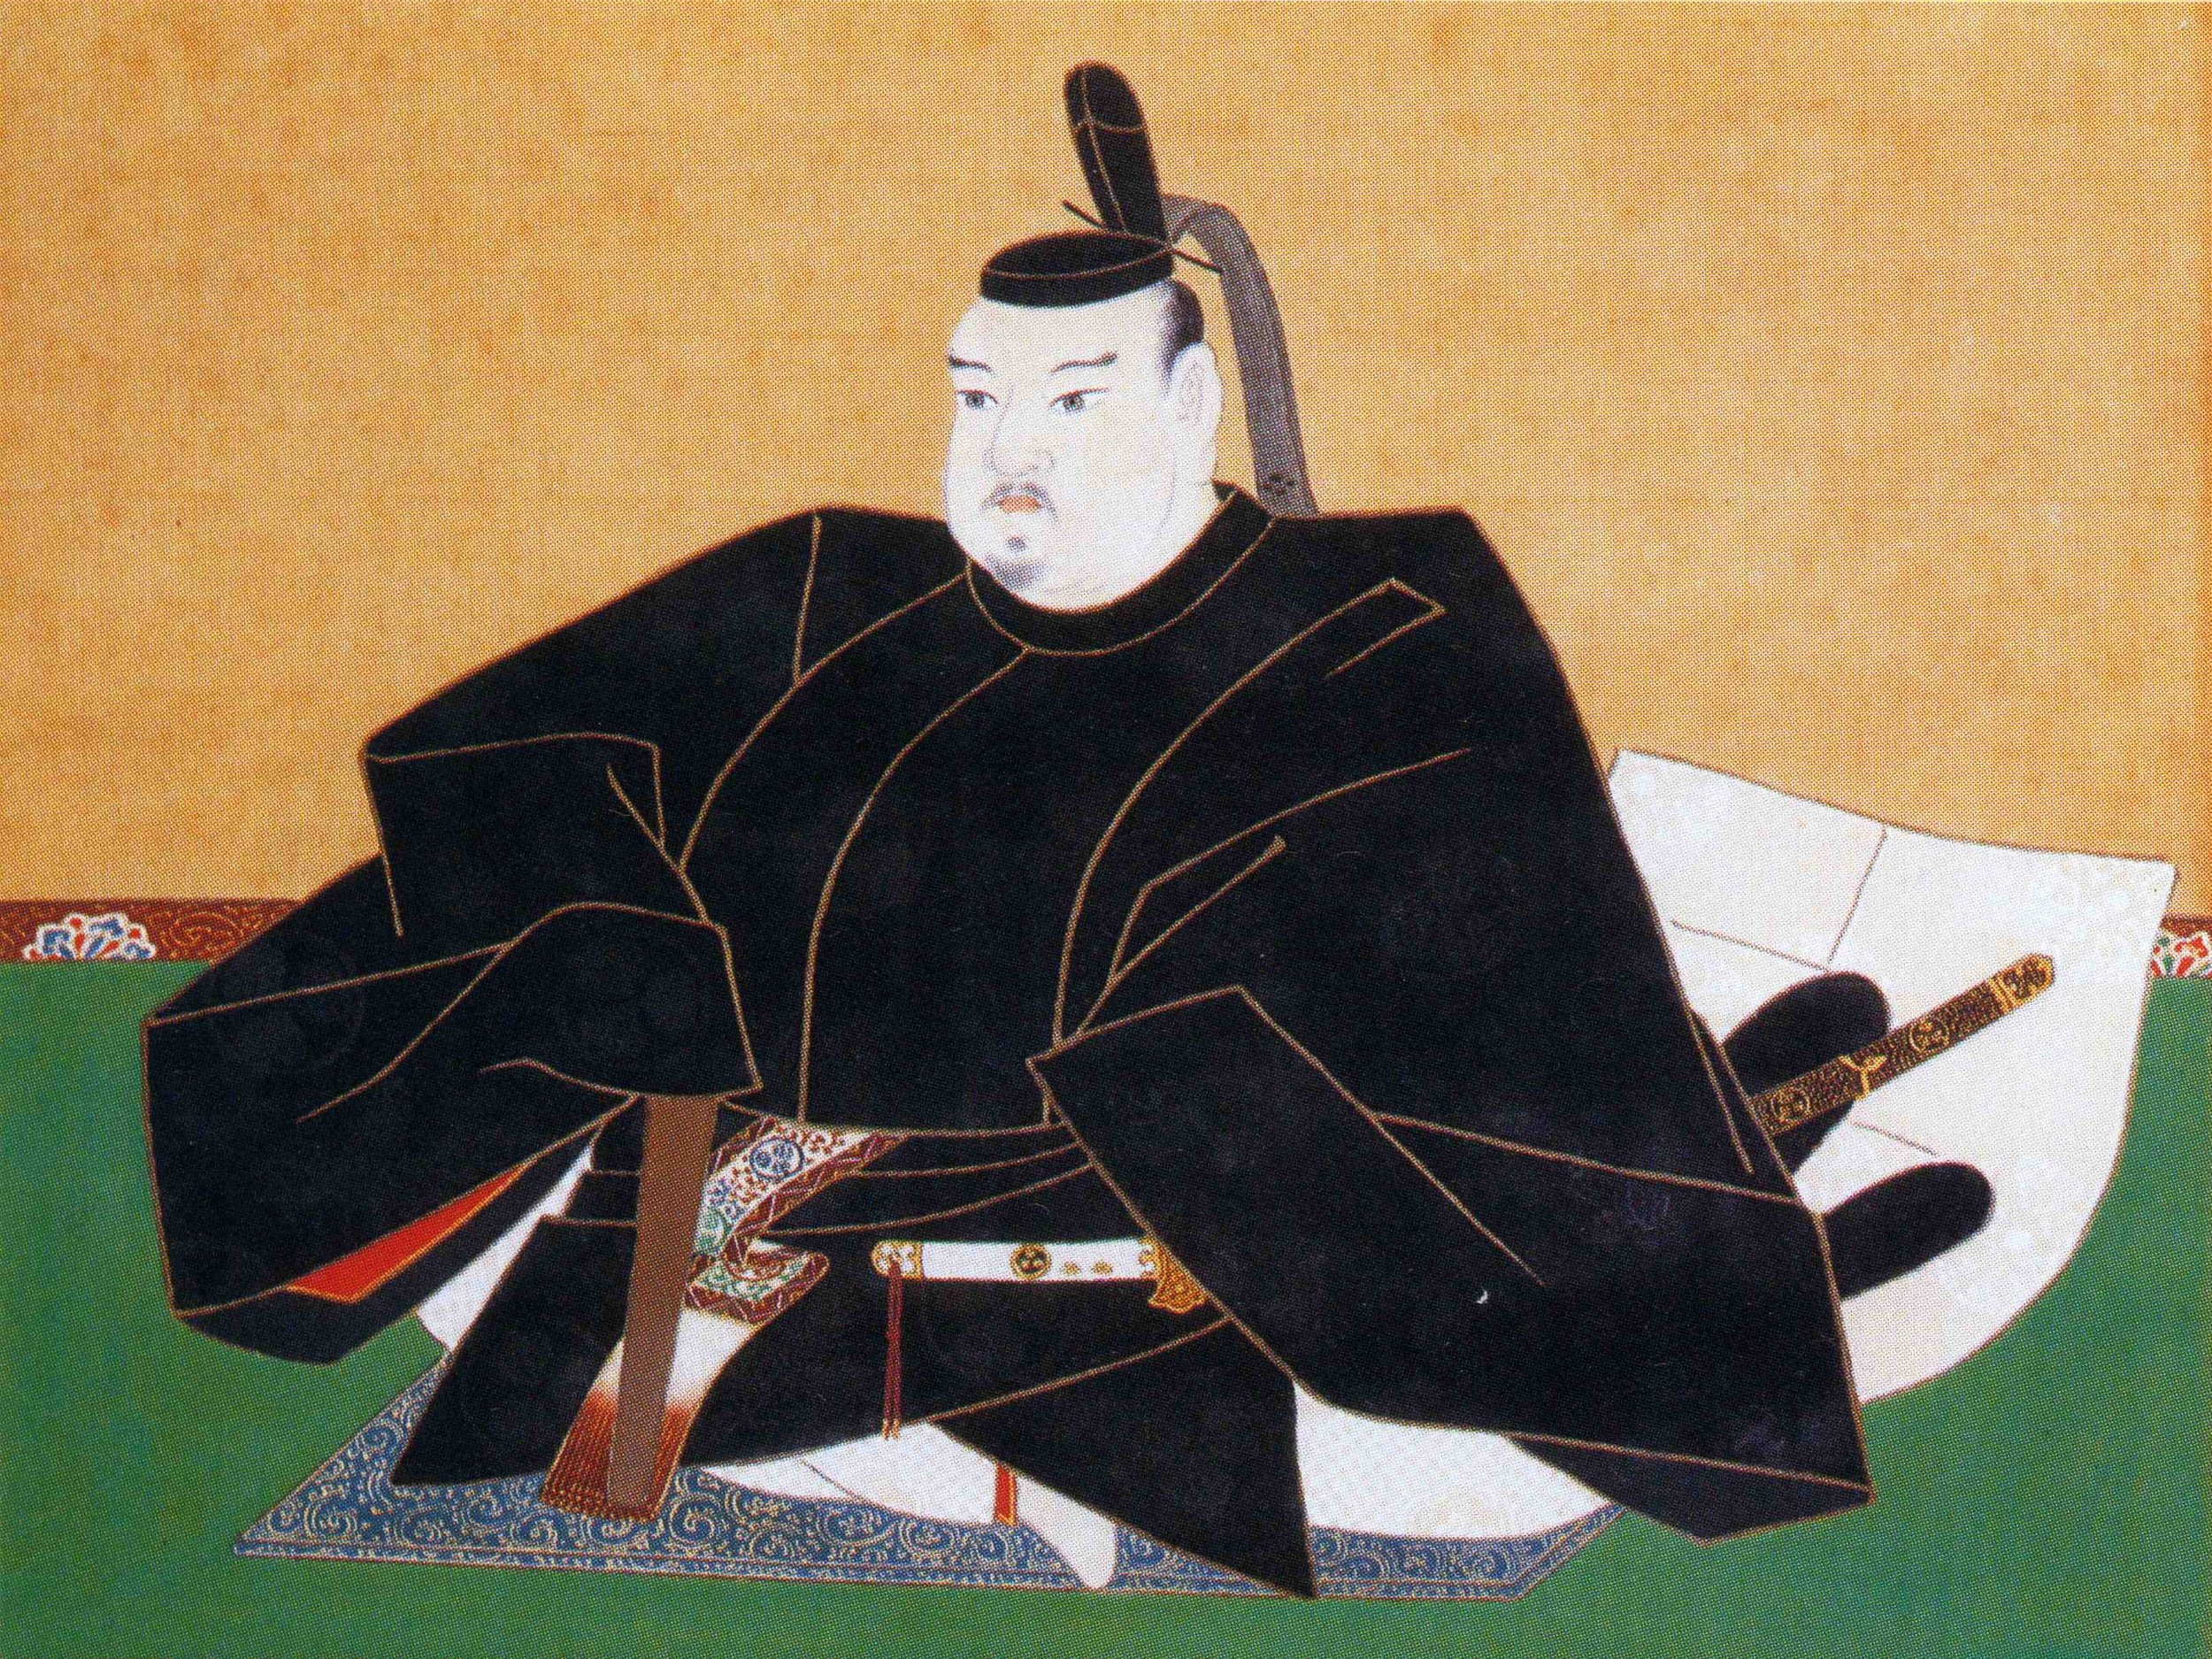 During Ieyasu's Shogunate, Jesuit missionaries spread the Christian faith and European merchants traded in Japan. Iemitsu enacted Sakoku, closing all ports in 1635. He outlawed Christianity so Buddhism thrived.